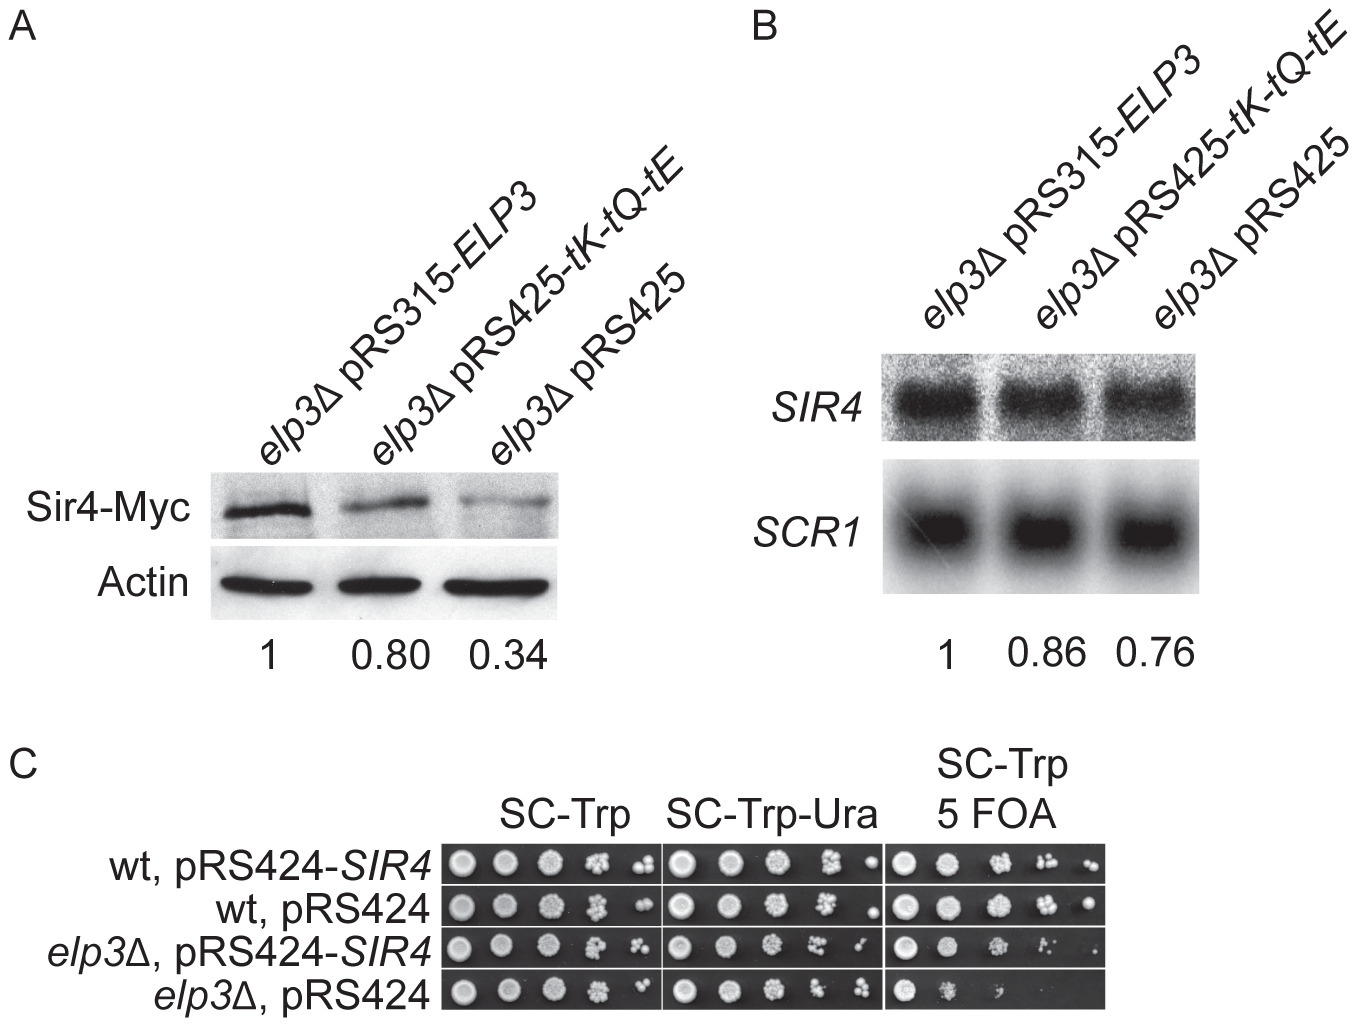 Sir4 protein levels are decreased in the <i>elp3</i>Δ mutant.